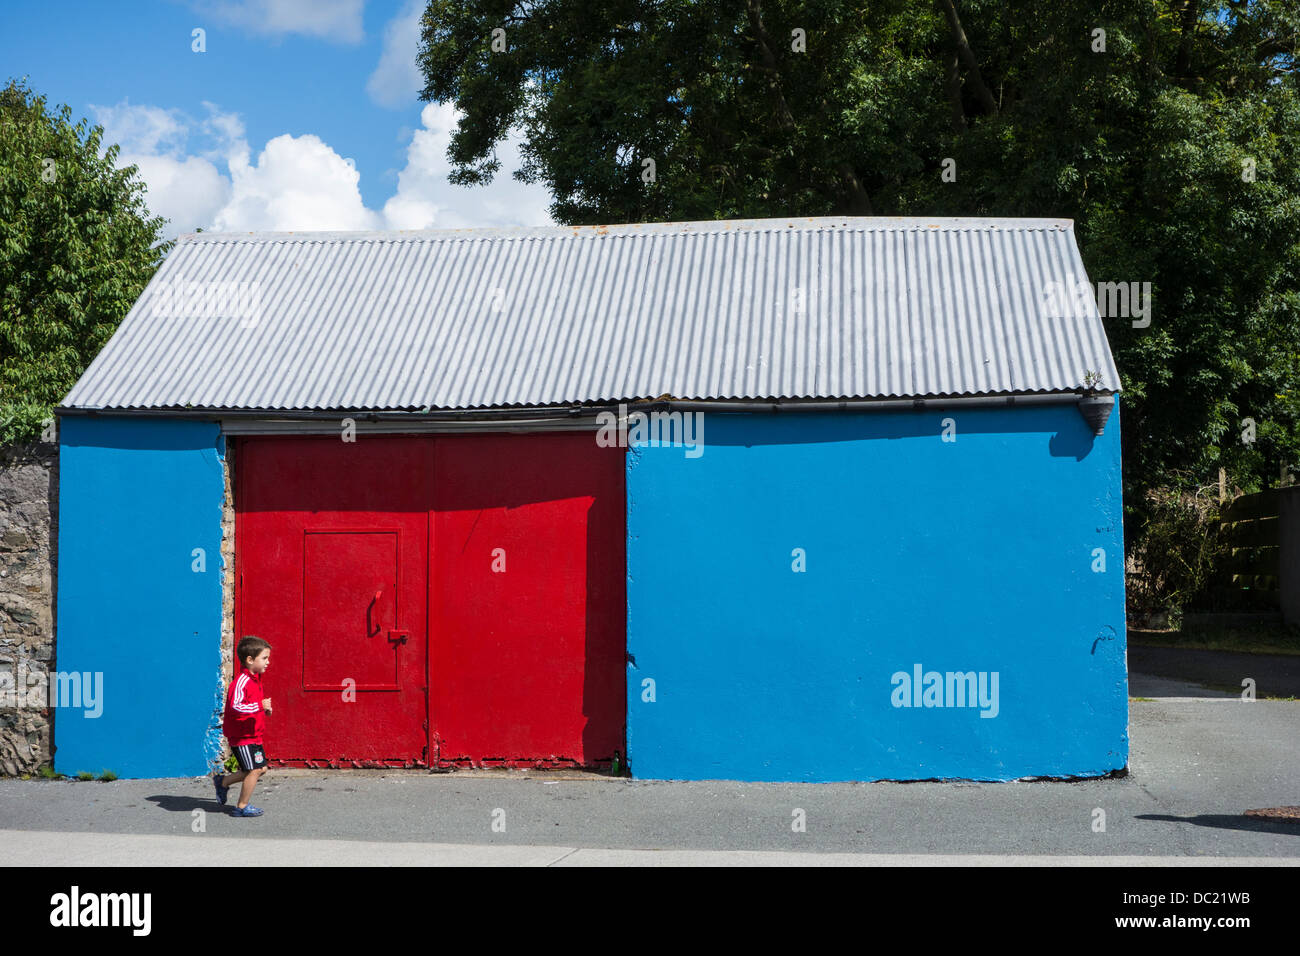 Yong child passing a brightly painted old shed,  red and blue - outside Dublin, Ireland Stock Photo